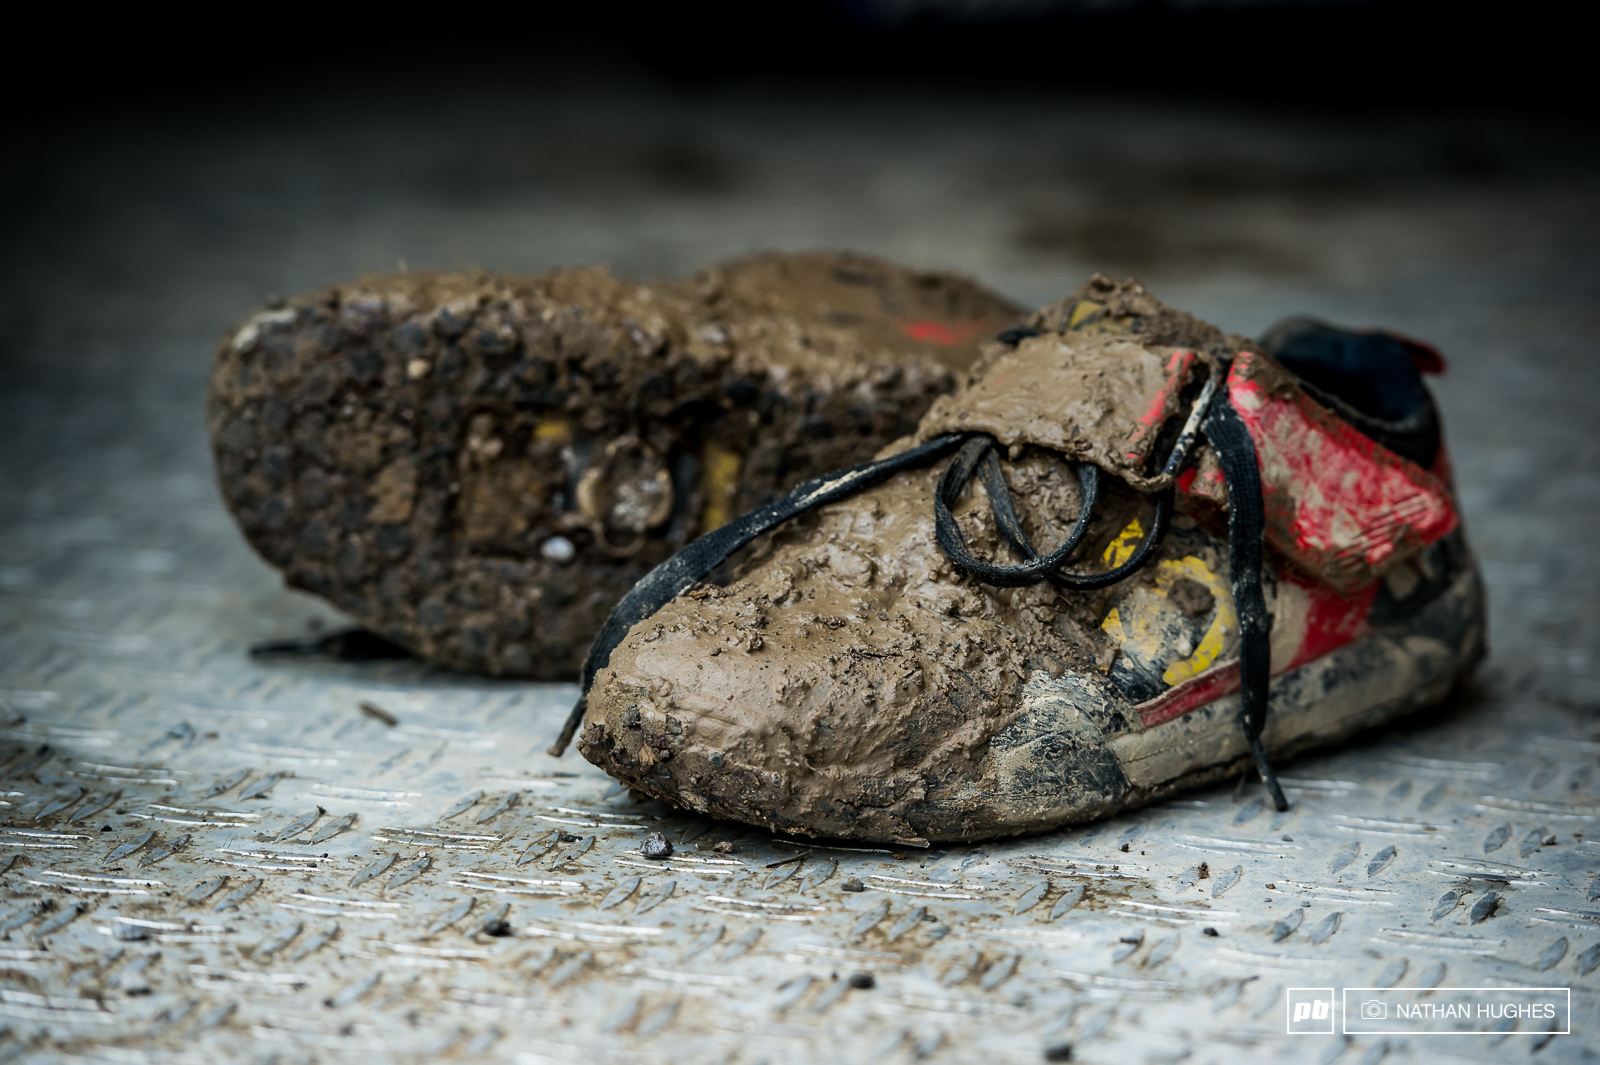 Danny Hart s shoes tell the tale of a day out on the mountain most would rather forgot.